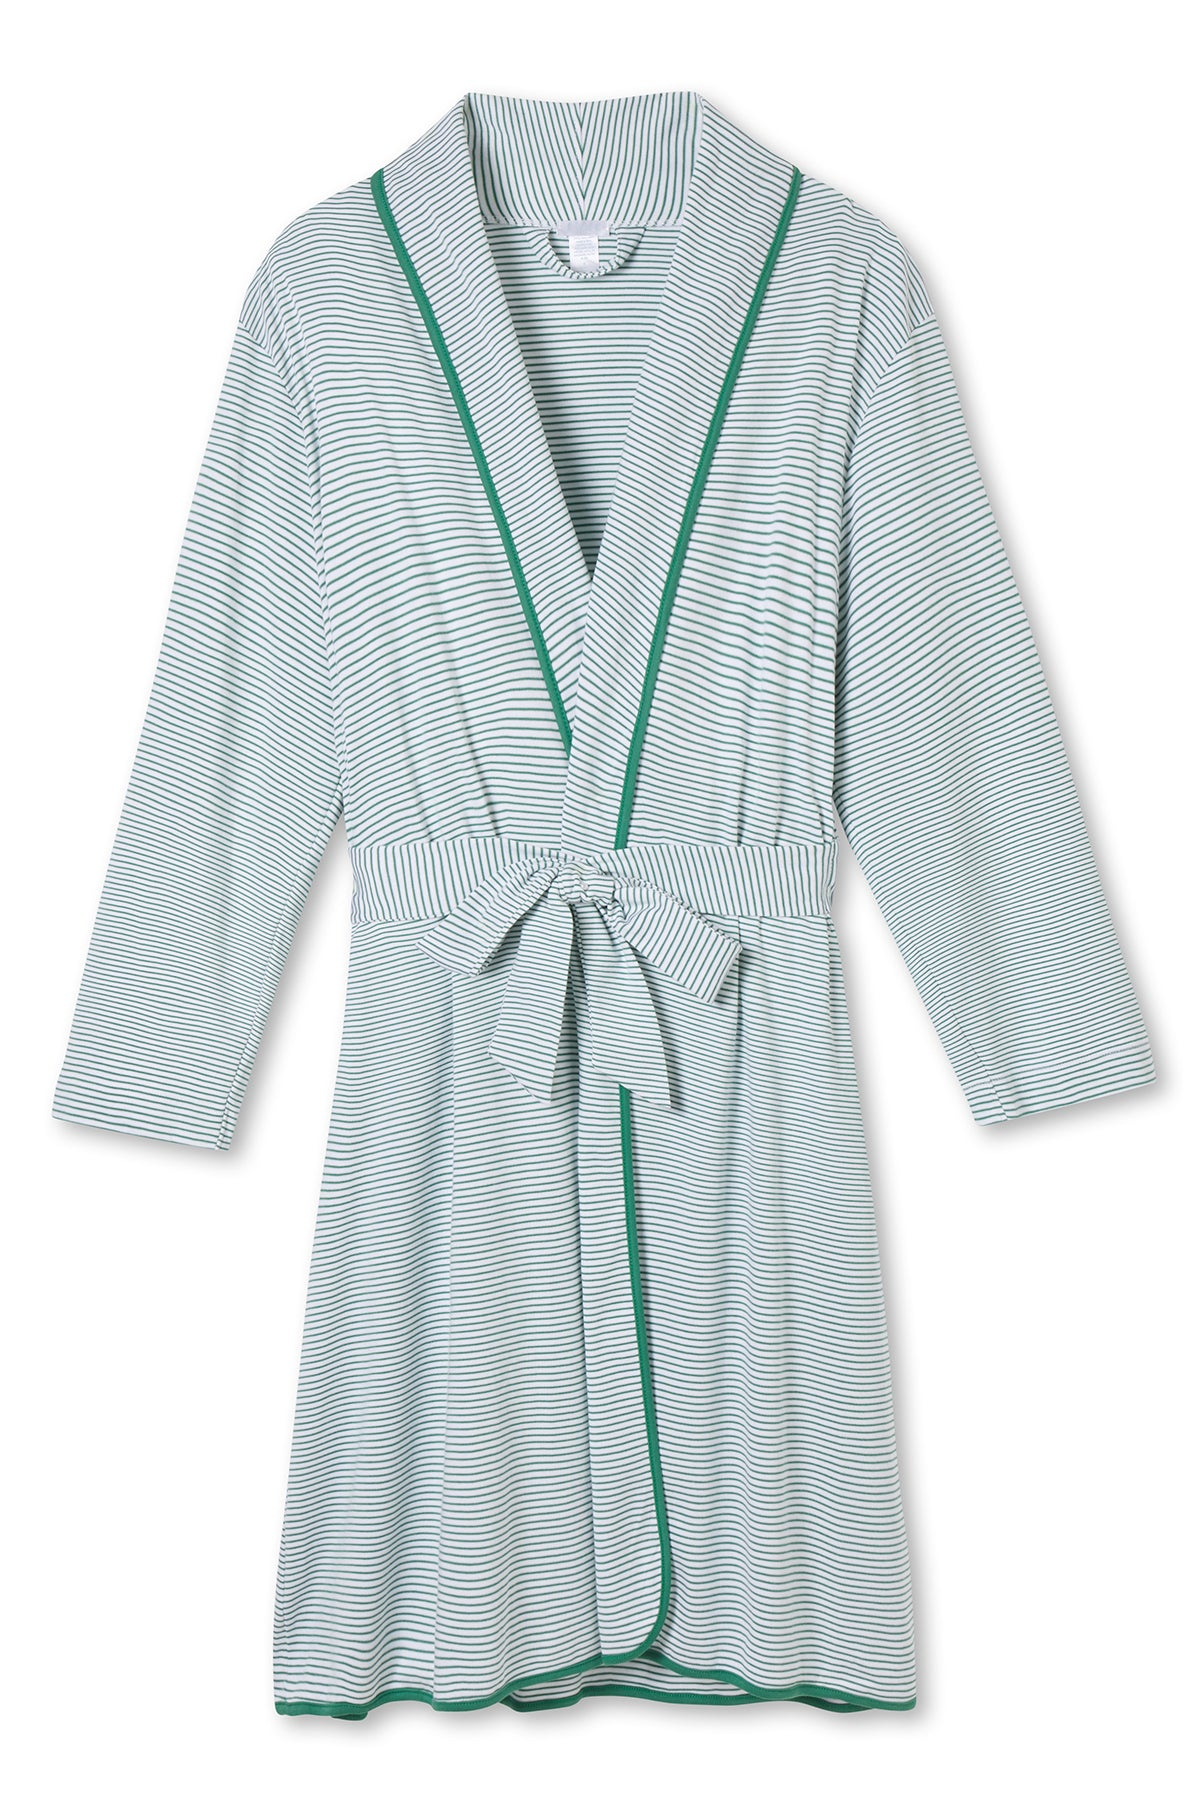 Pima Robe in Classic Green